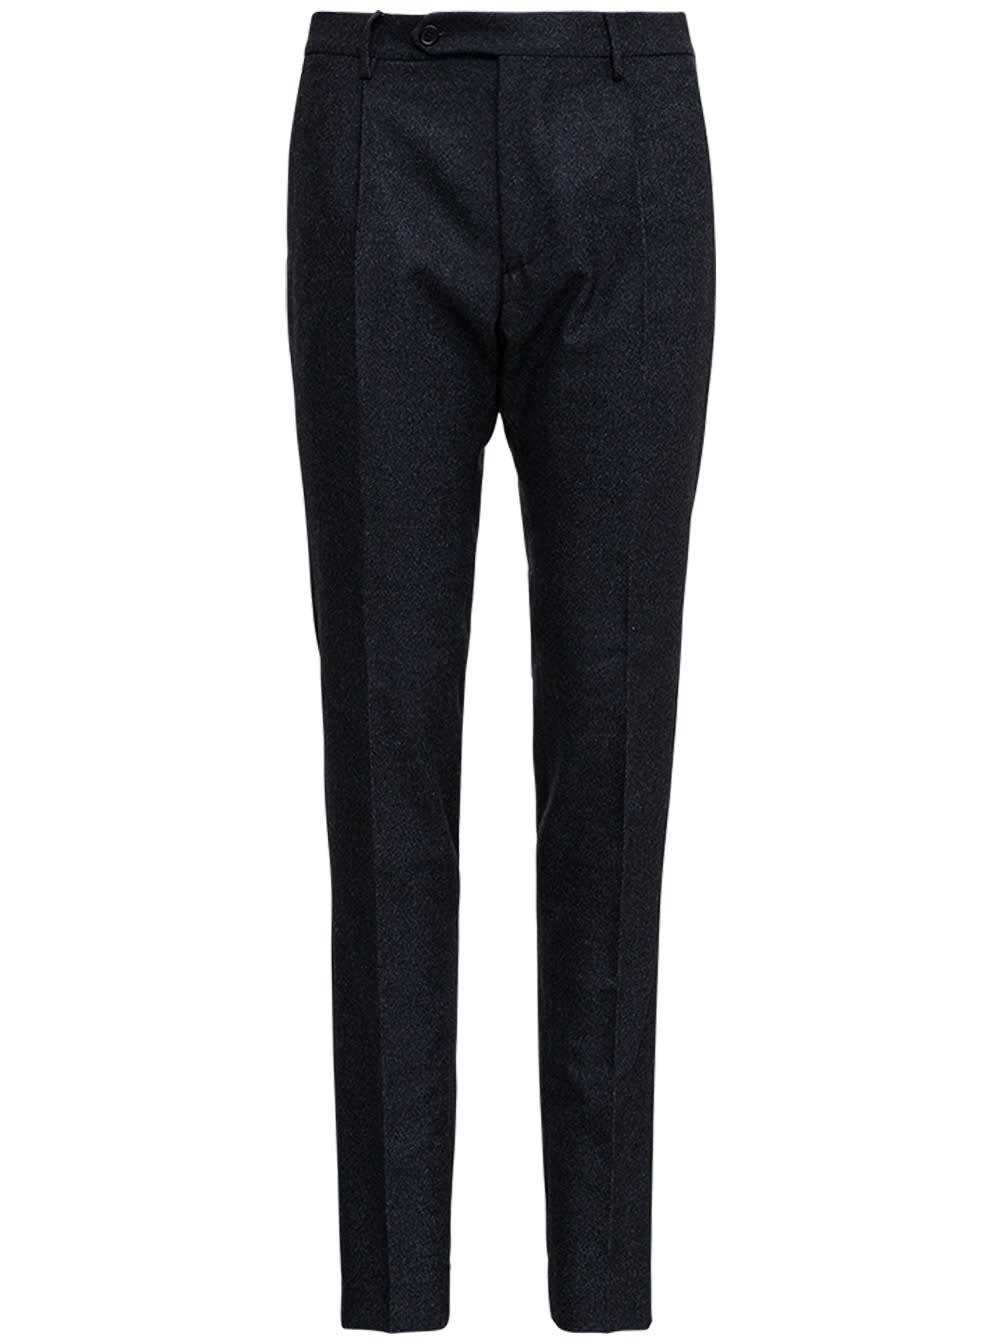 Grey Tailored Wool Trousers